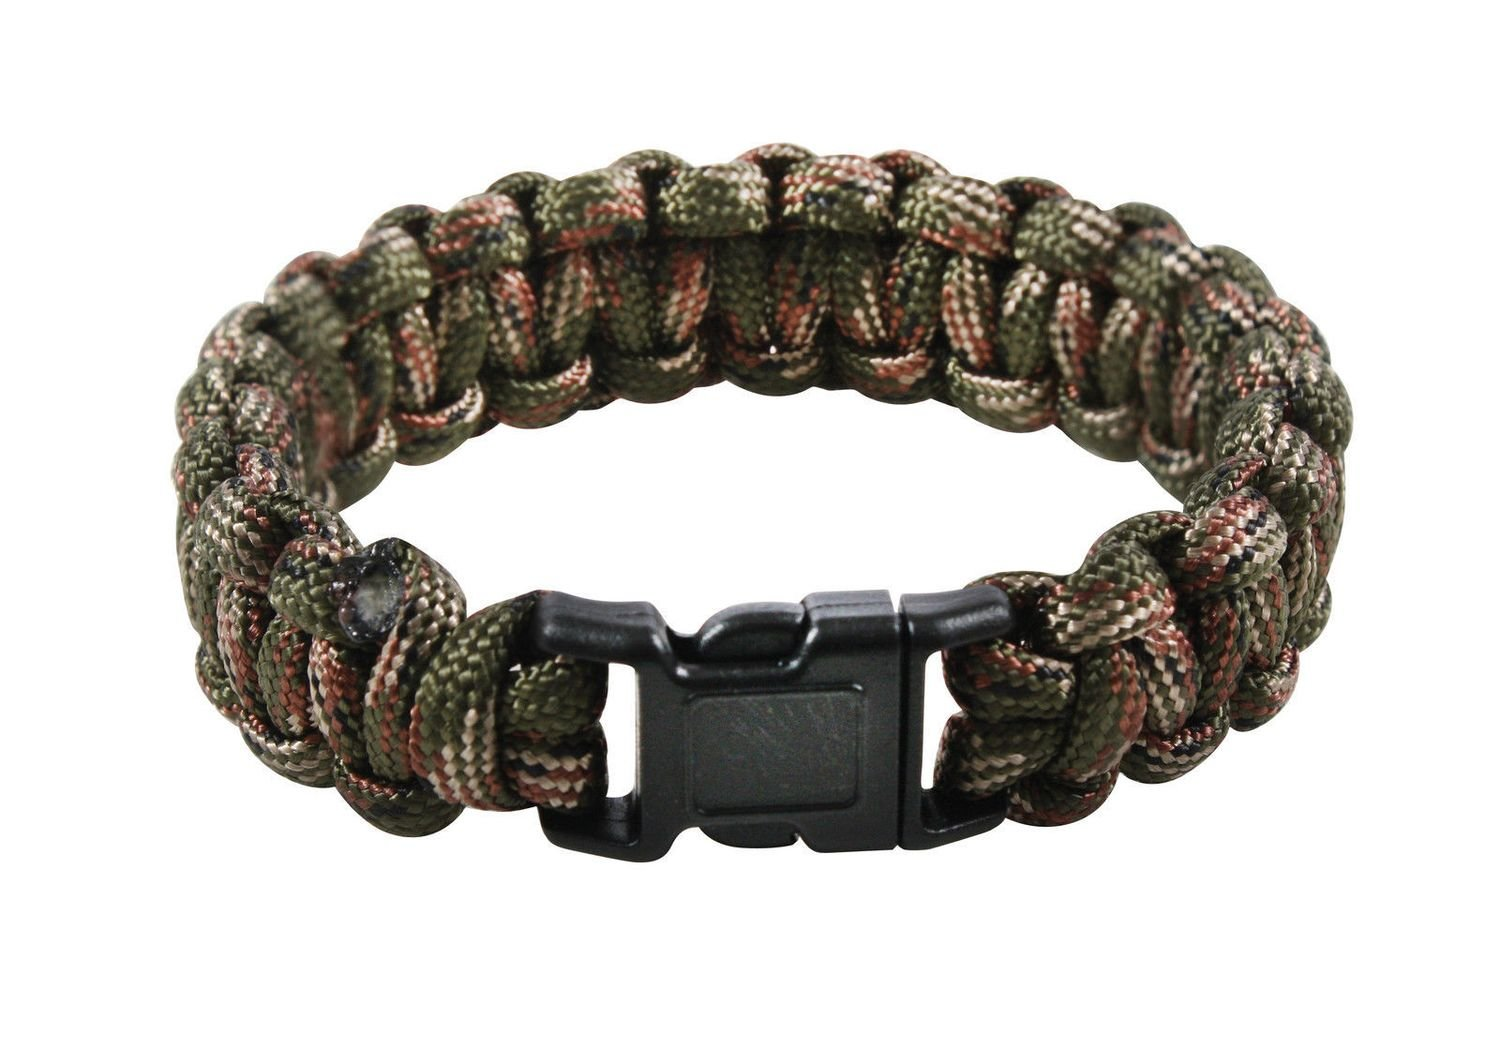 Rothco Multi-Colored Paracord Bracelet 9 Inch 933